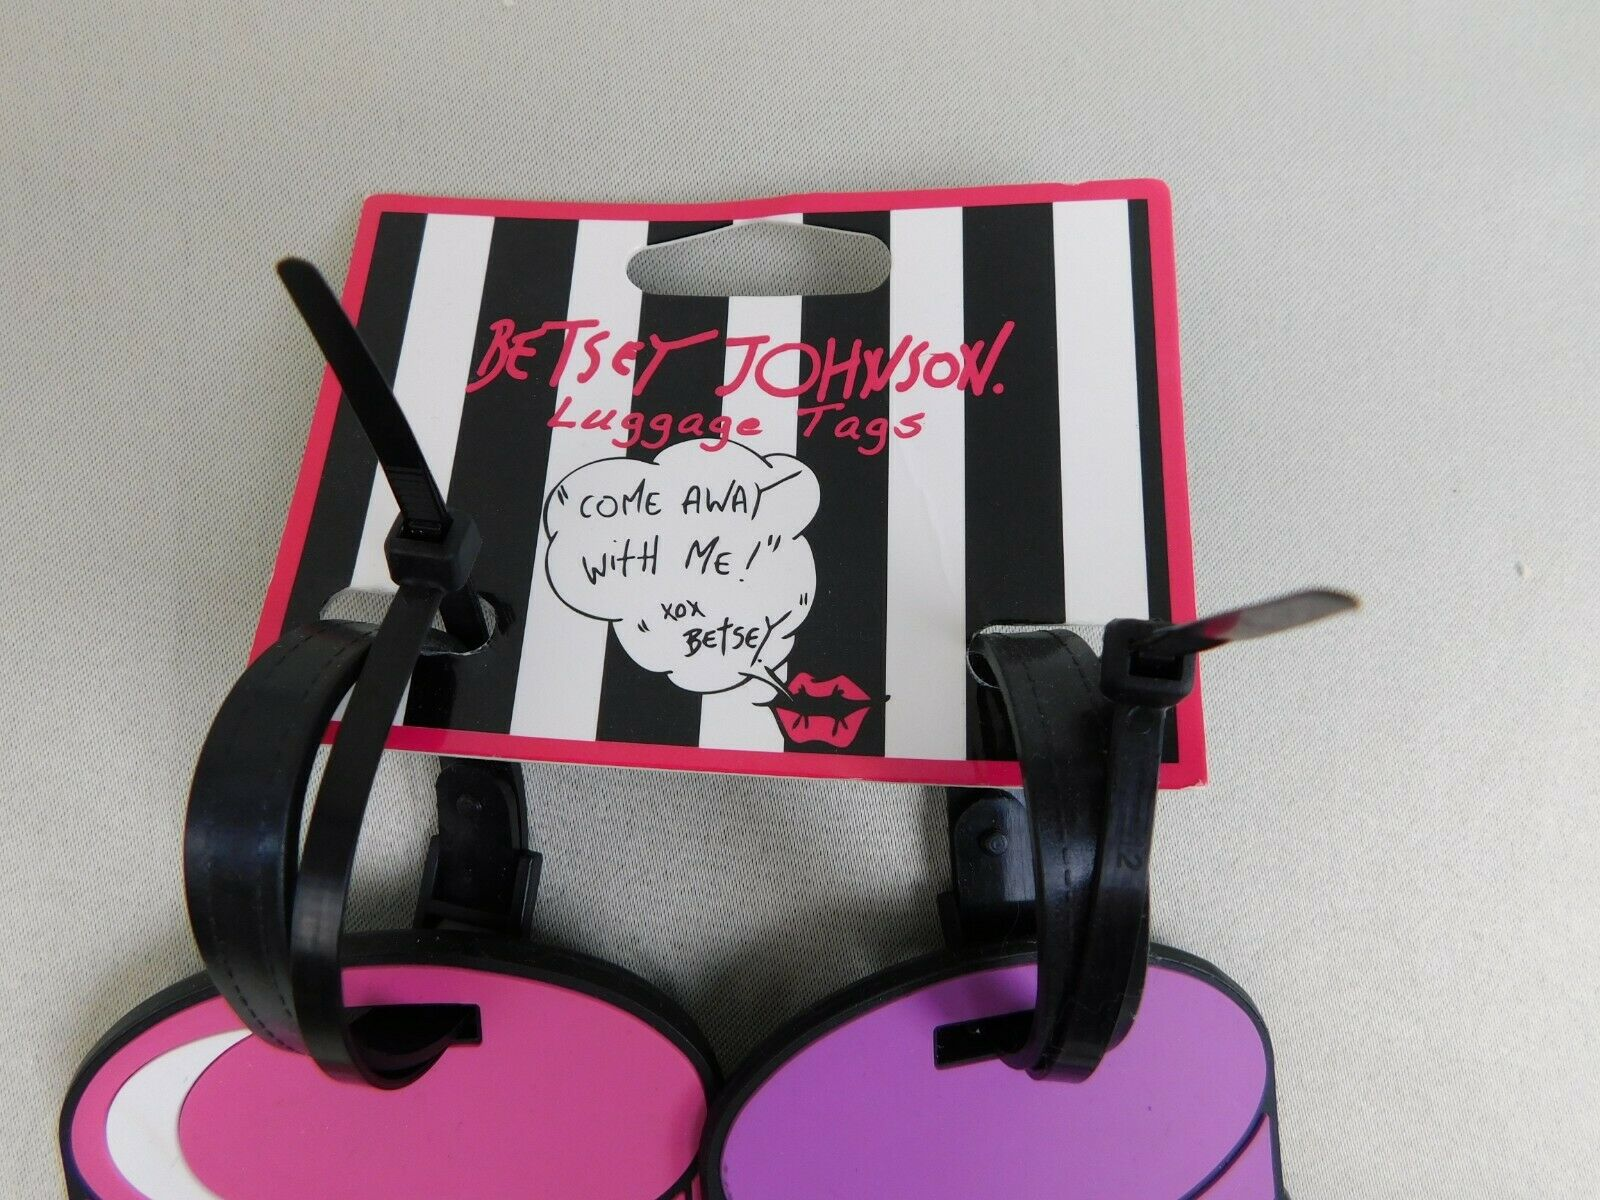 BETSEY JOHNSON LUGGAGE TAGS  PEANUT BUTTER AND JELLY BT2